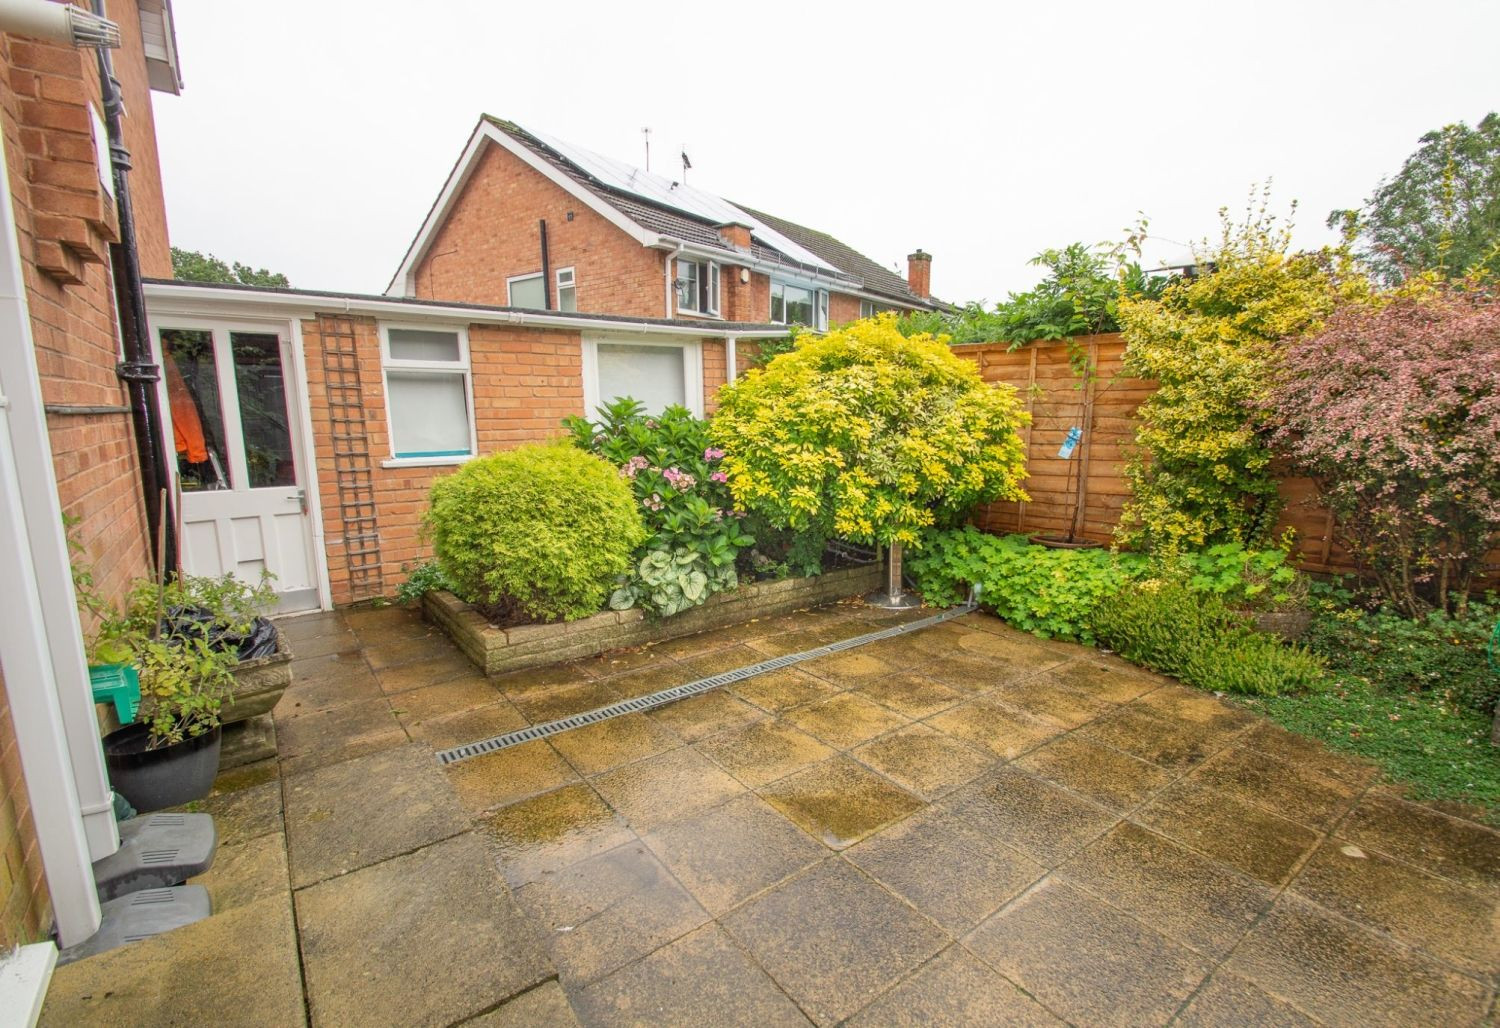 3 bed semi-detached for sale in Vicarage Crescent, Redditch  - Property Image 14